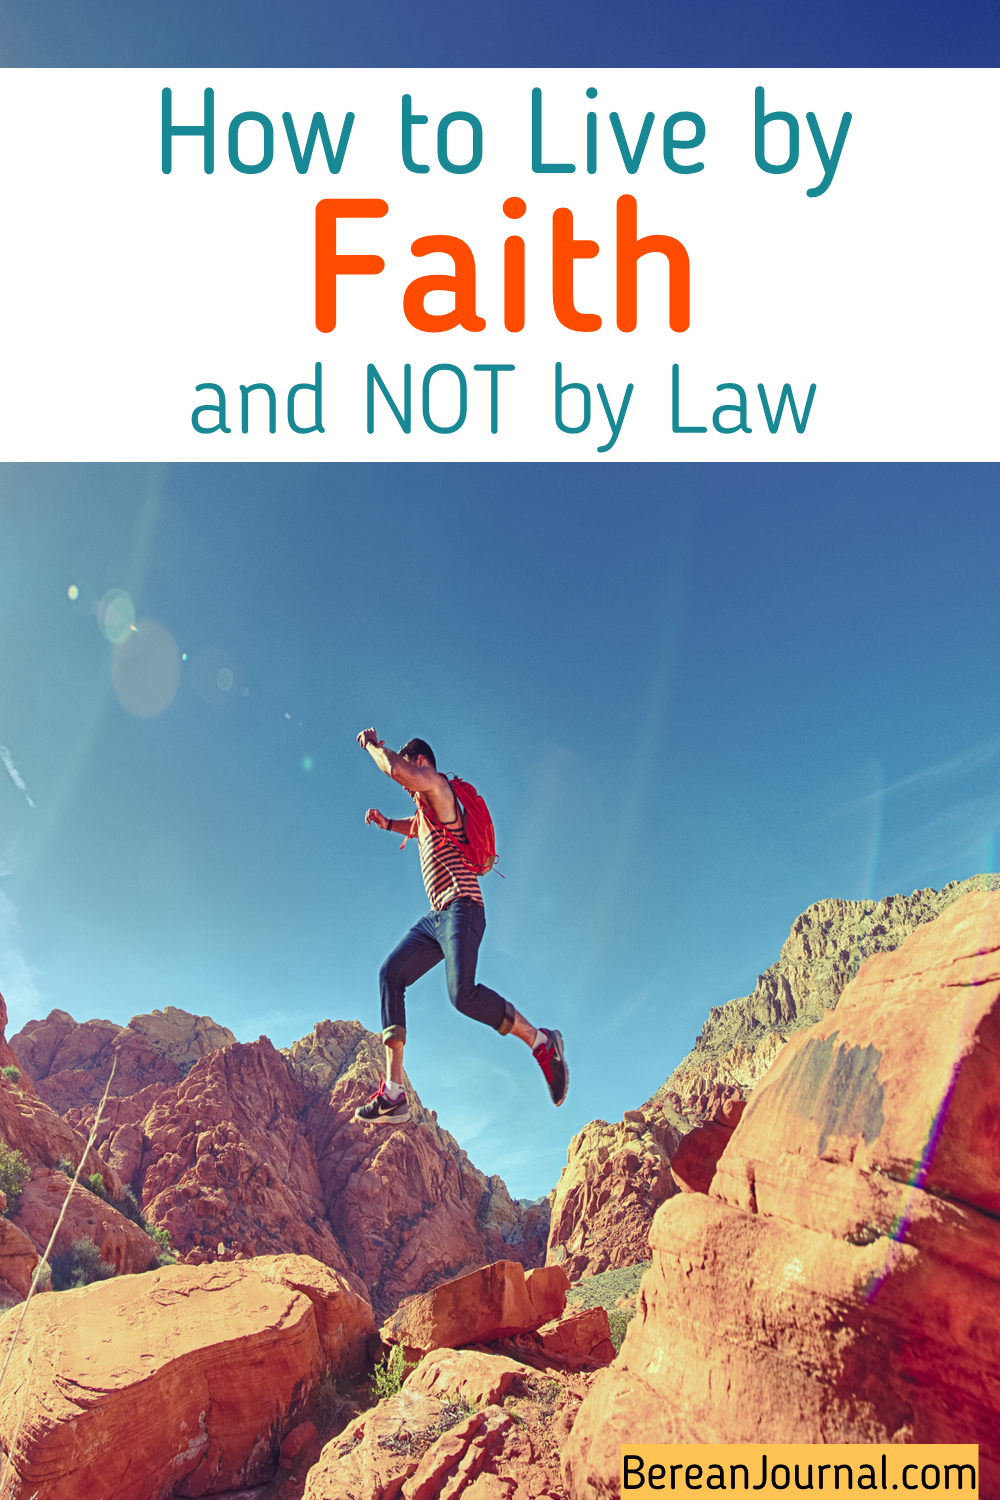 As a Christian, Faith in God is not just a building block, but a way of life. Check out this Illustration of what Faith in God is all about and become women of faith not living in fear of the law.